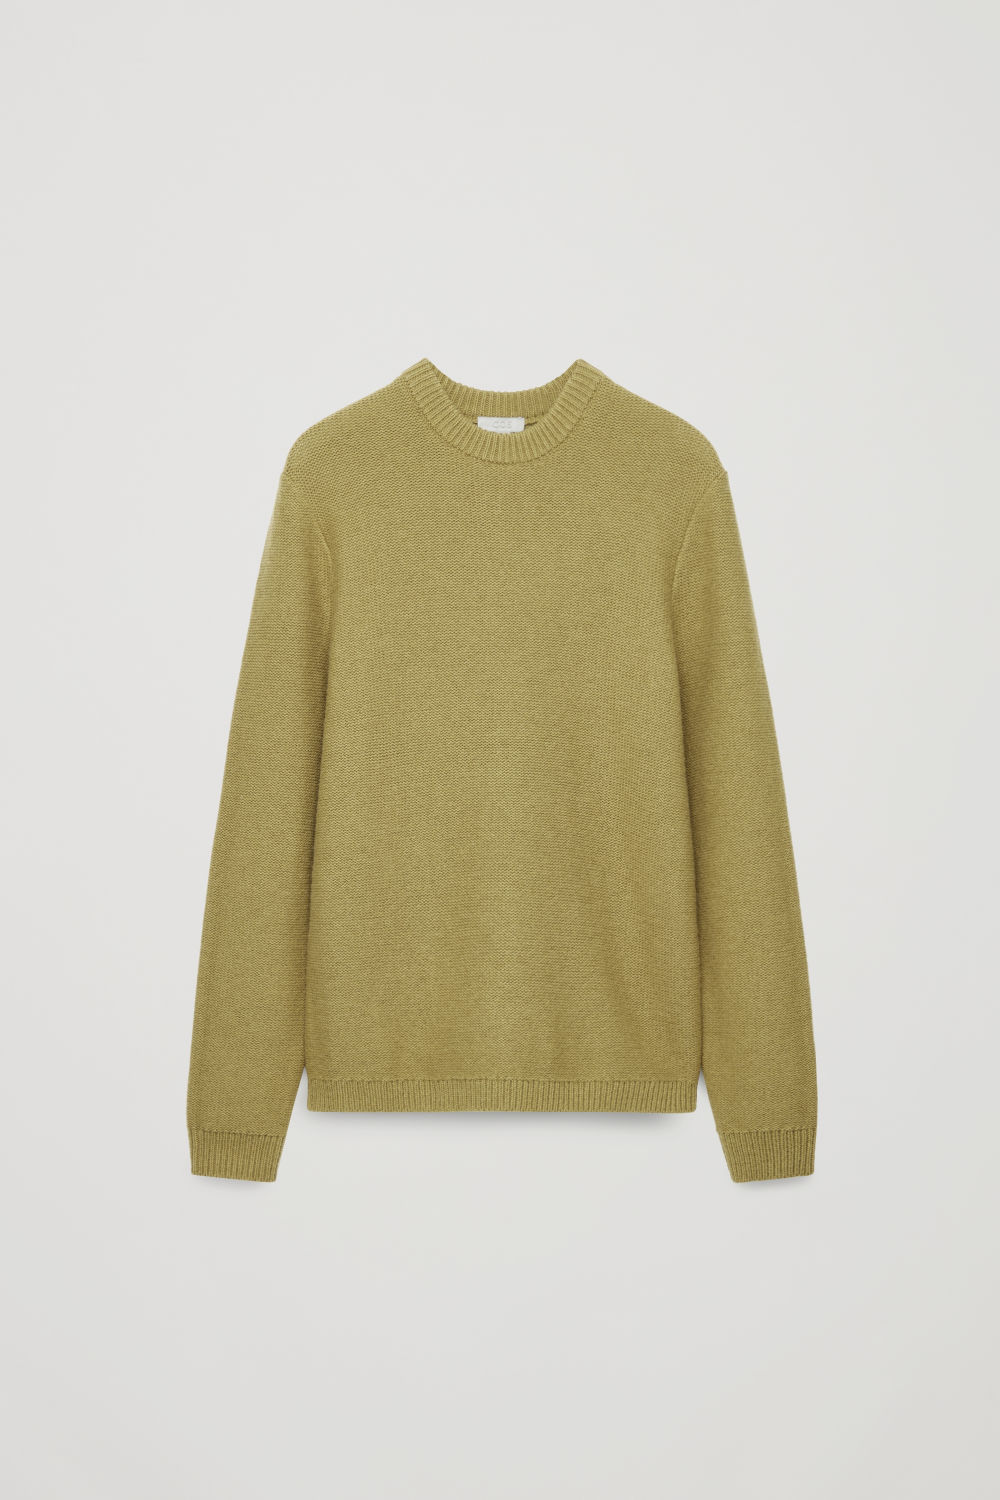 REVERSE-KNIT WOOL JUMPER